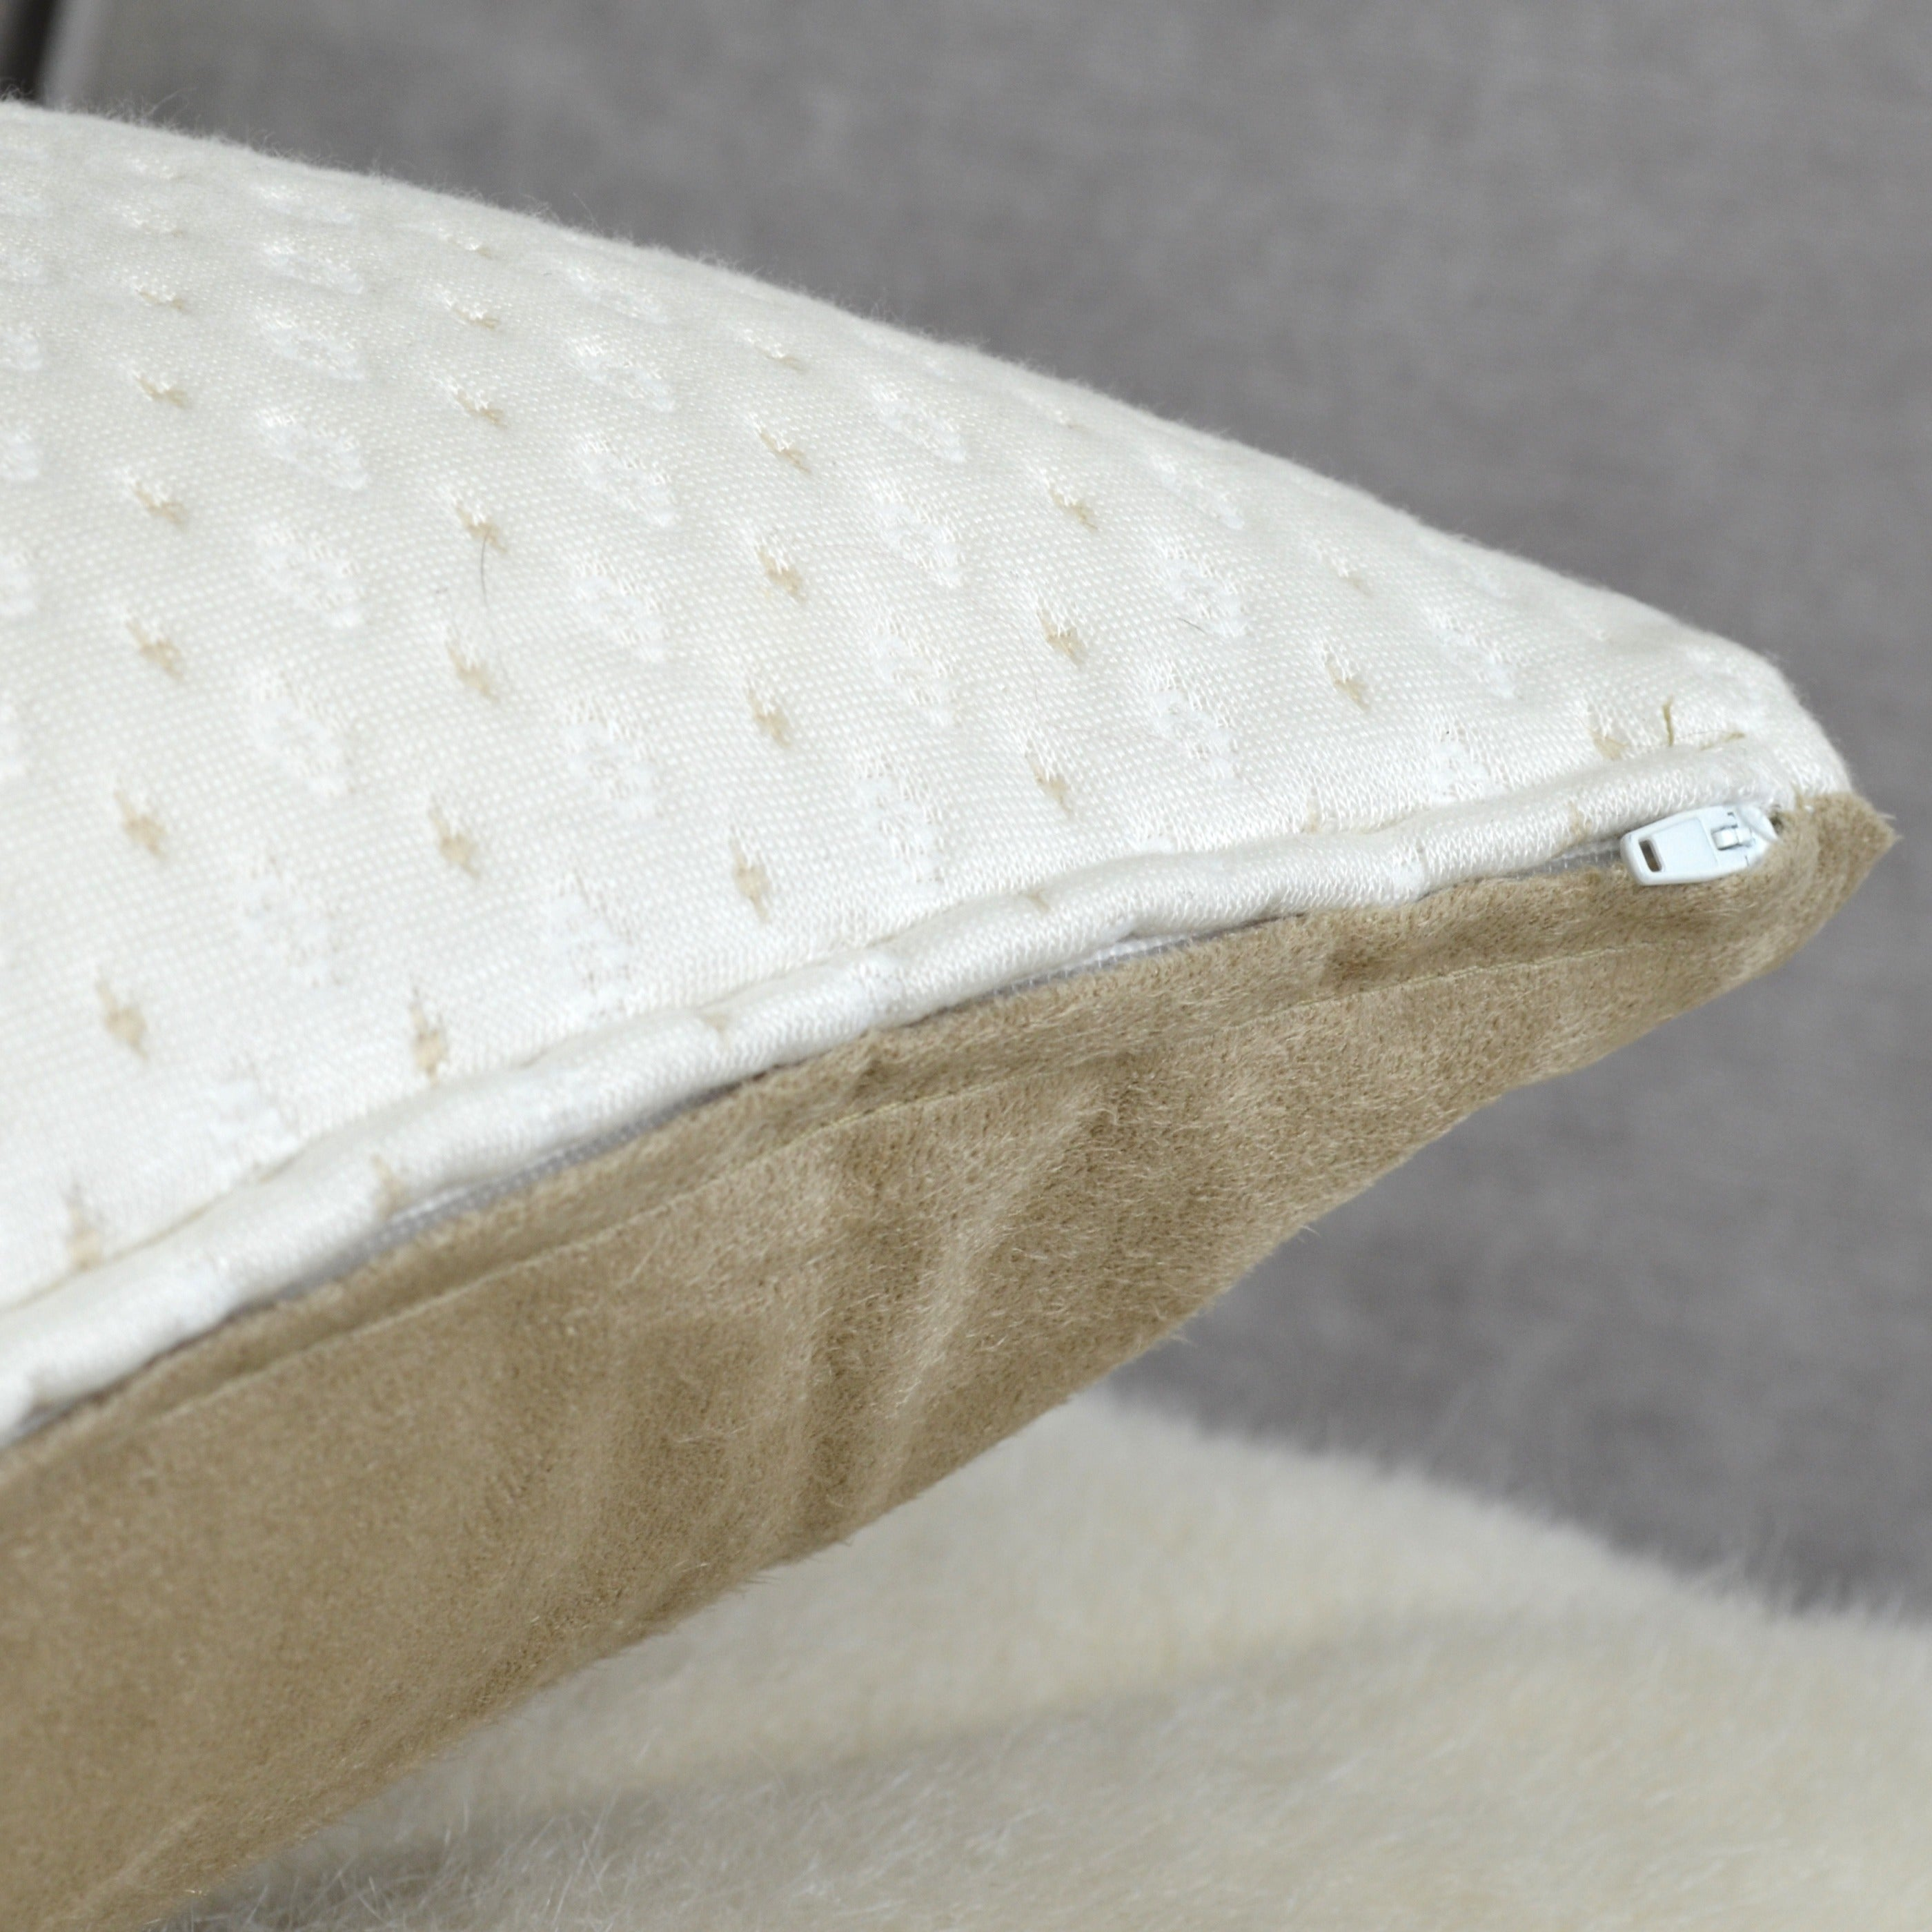 for s migraines the review best what bamboo reviews neck rest elite and pillow pain form fit